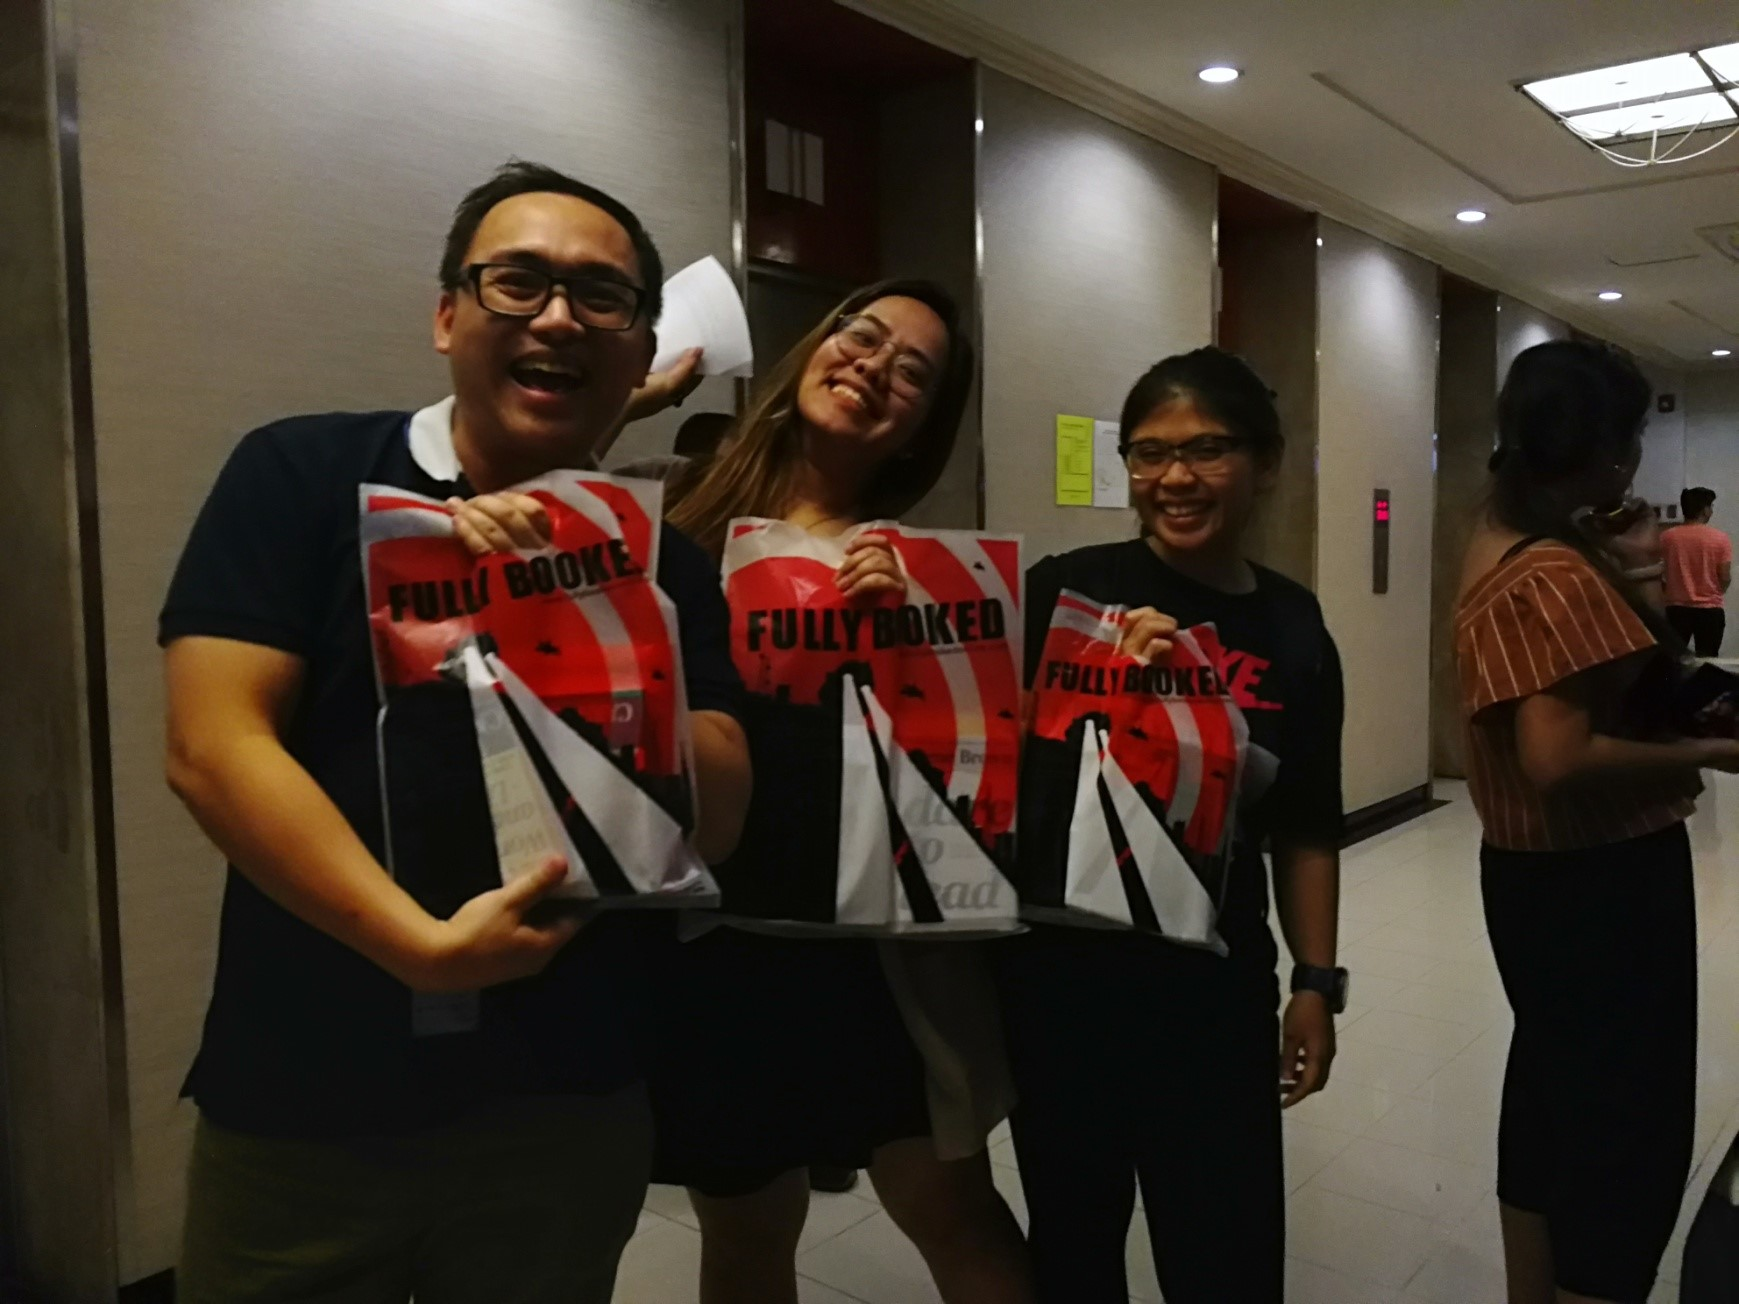 Employees spent a total of over P130,000 on books as Fullybooked reported its sales for that day.